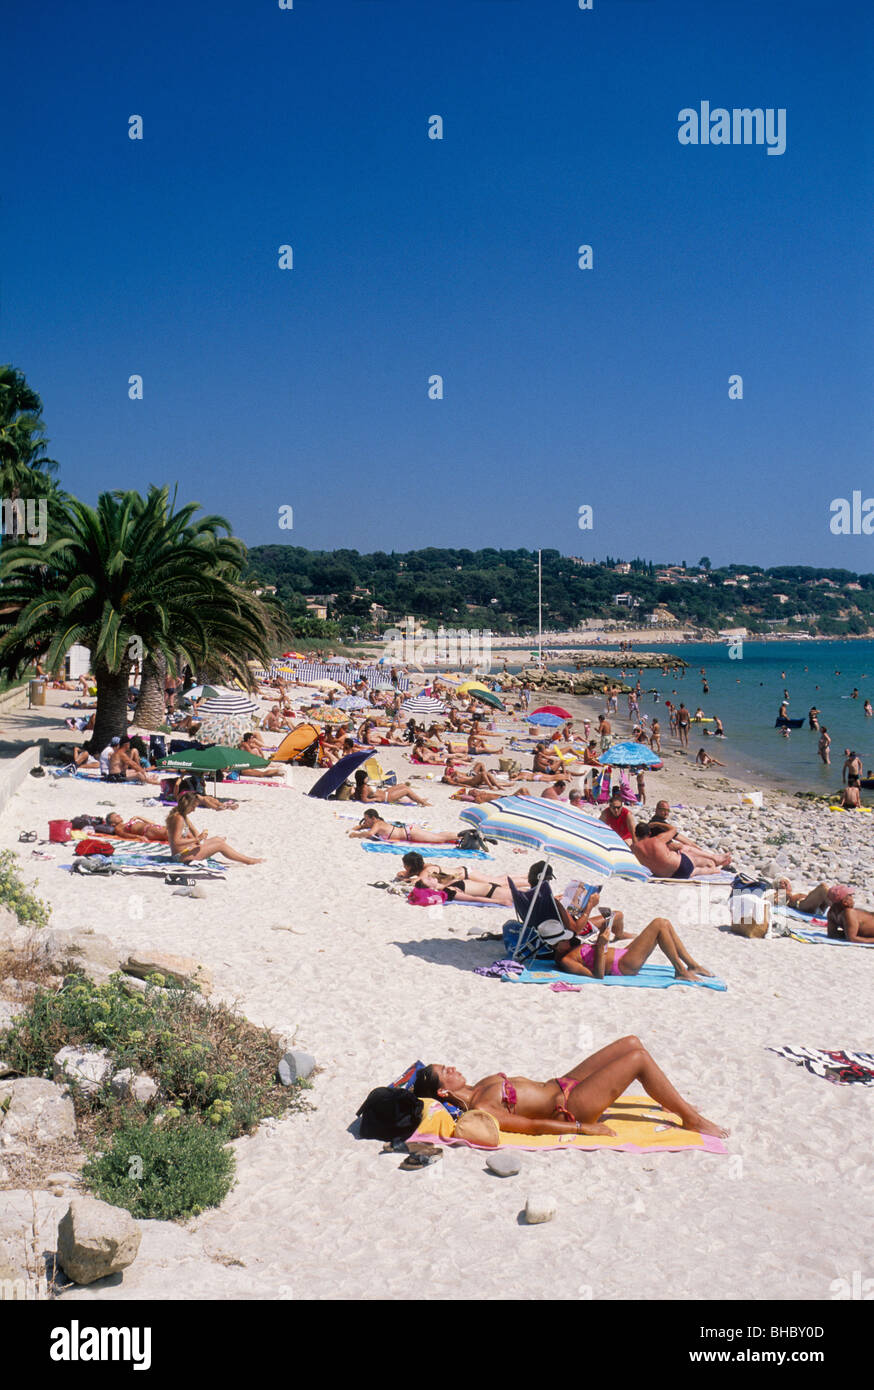 Beaches In Southern France Lively Holidays Scene In August